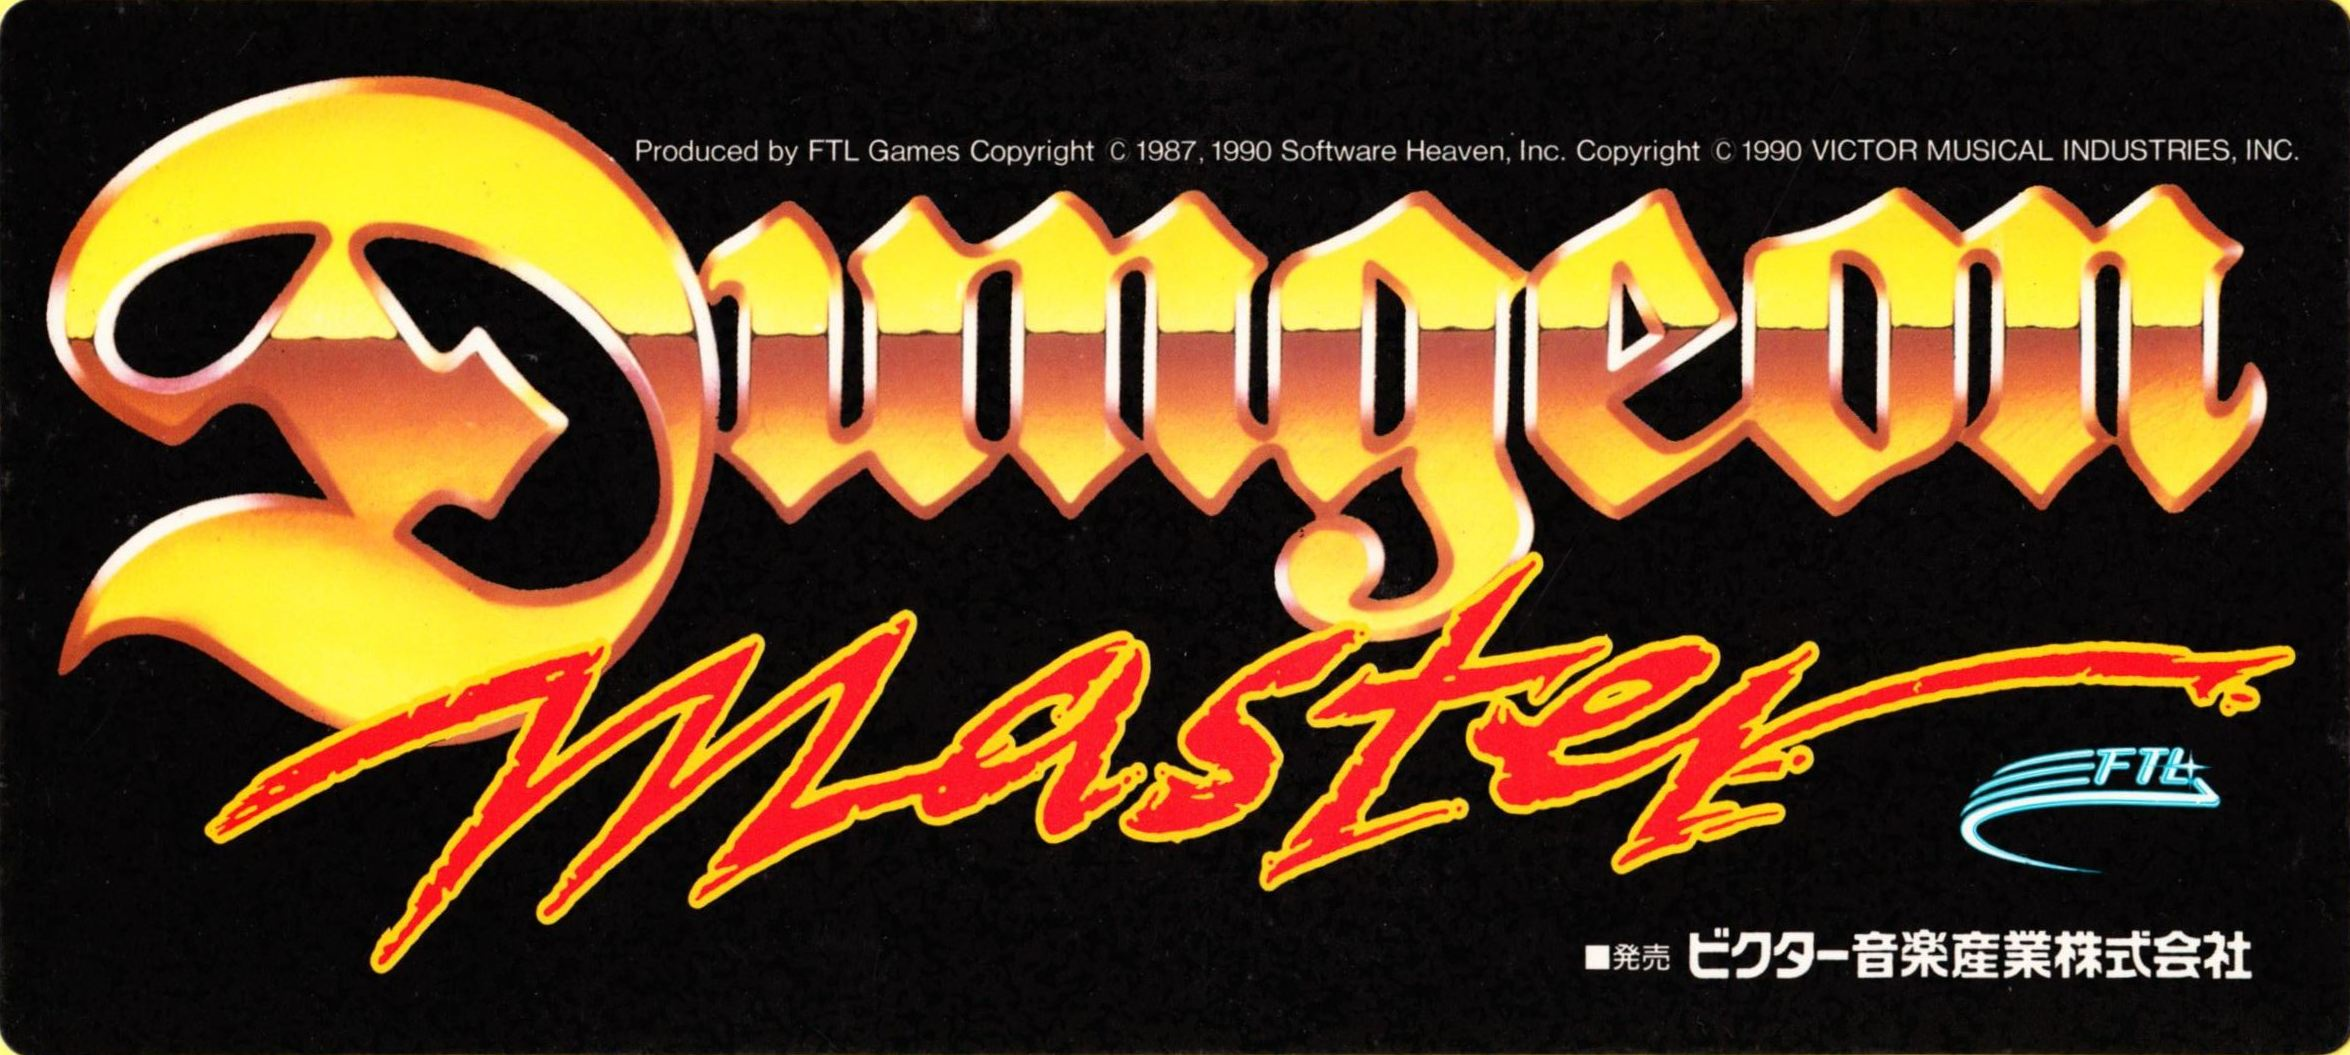 Game - Dungeon Master - JP - PC-9801 - 5.25-inch - Sticker - Front - Scan